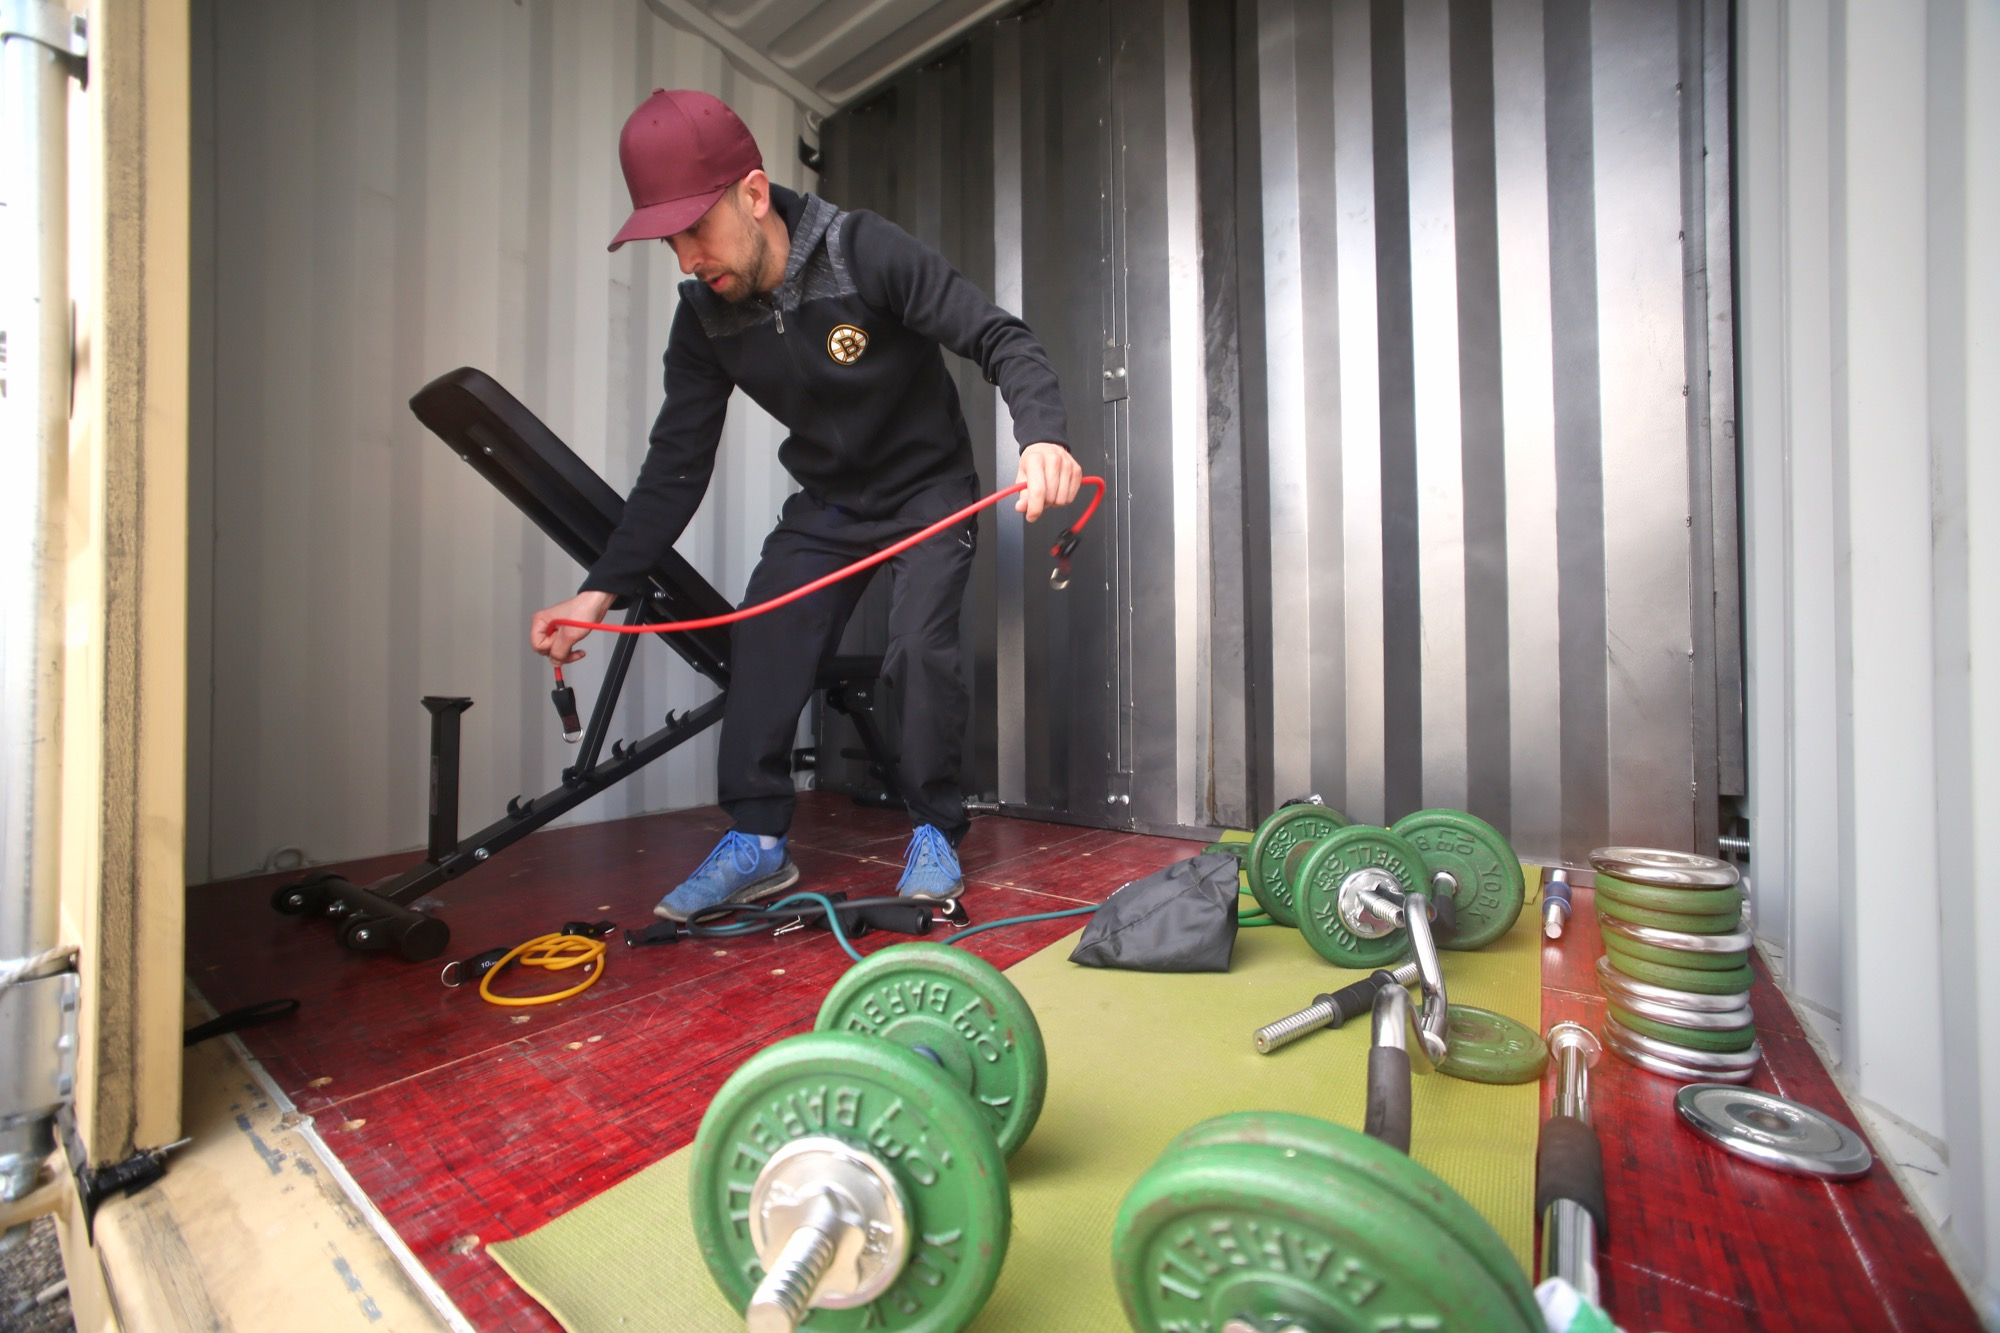 Ryan Pandolfi sets up his storage container gym for a workout on Saturday.